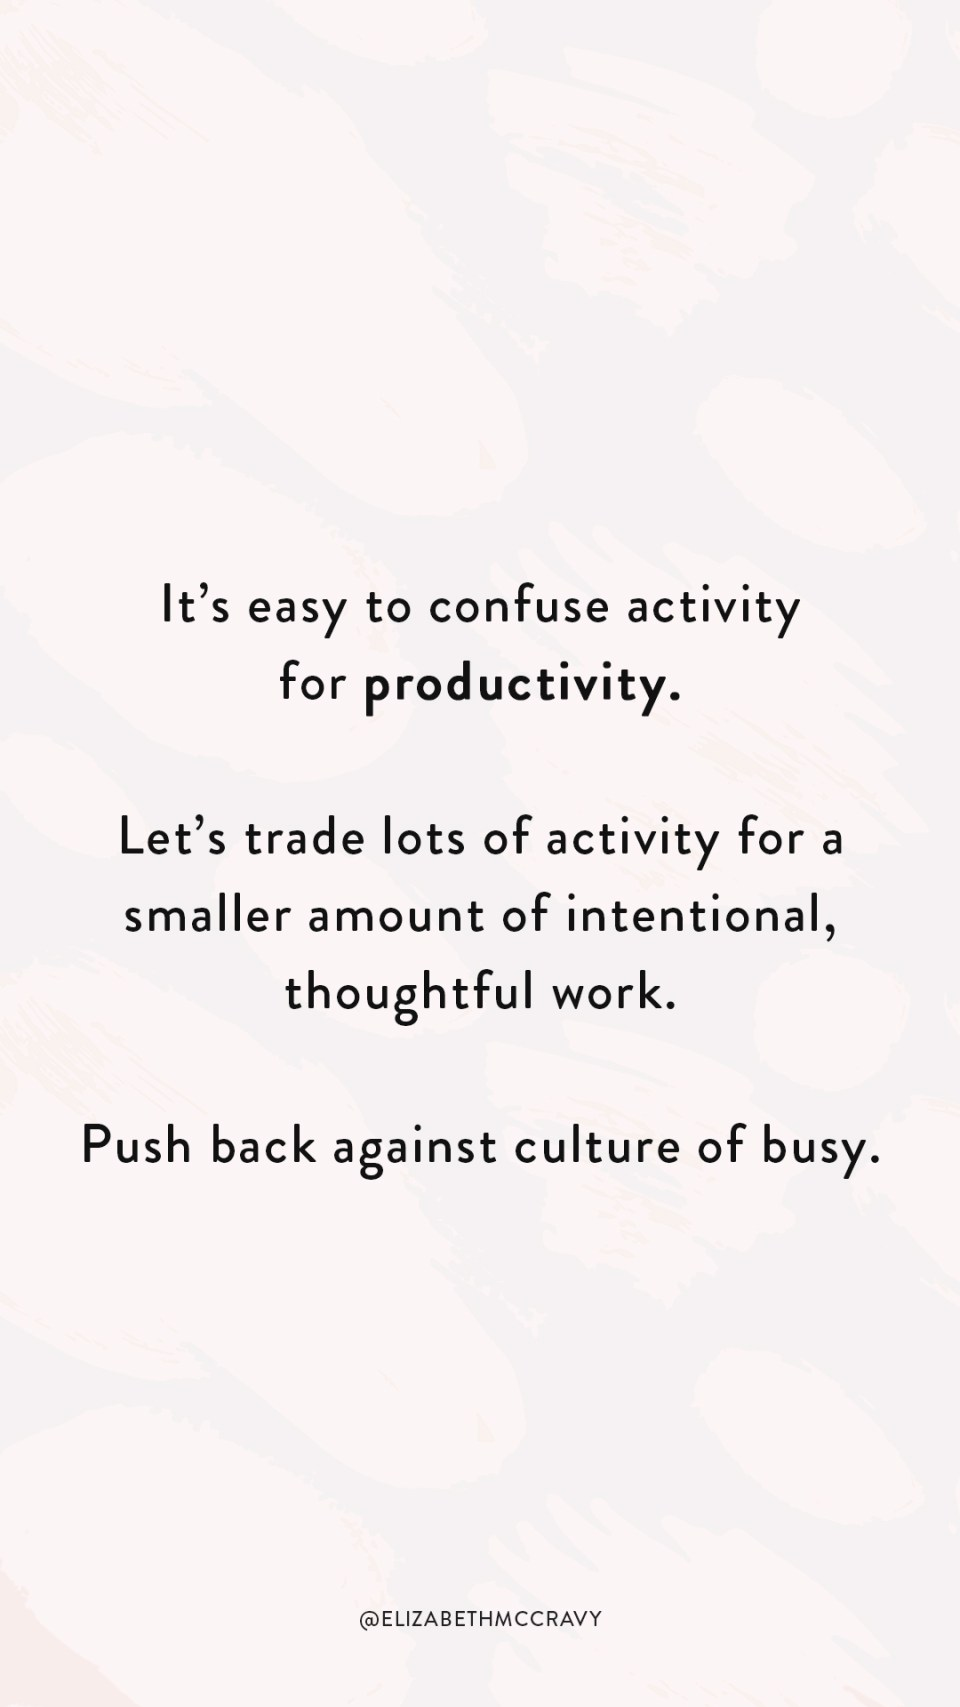 """Telling yourself """"I'm going to work 10 hours every day until I get to where I want to be."""" is a lot easier than putting in the work to figure out how you can run your business smart. Answering questions like """"How can I not work myself to the bone?"""" and """"How can I make my time work for me instead of being a slave to time?"""" is harded. It's easy to confuse activity for productivity. Let's trade lots of activity for a smaller amount of intentional, thoughtful work. Push back against culture of busy."""